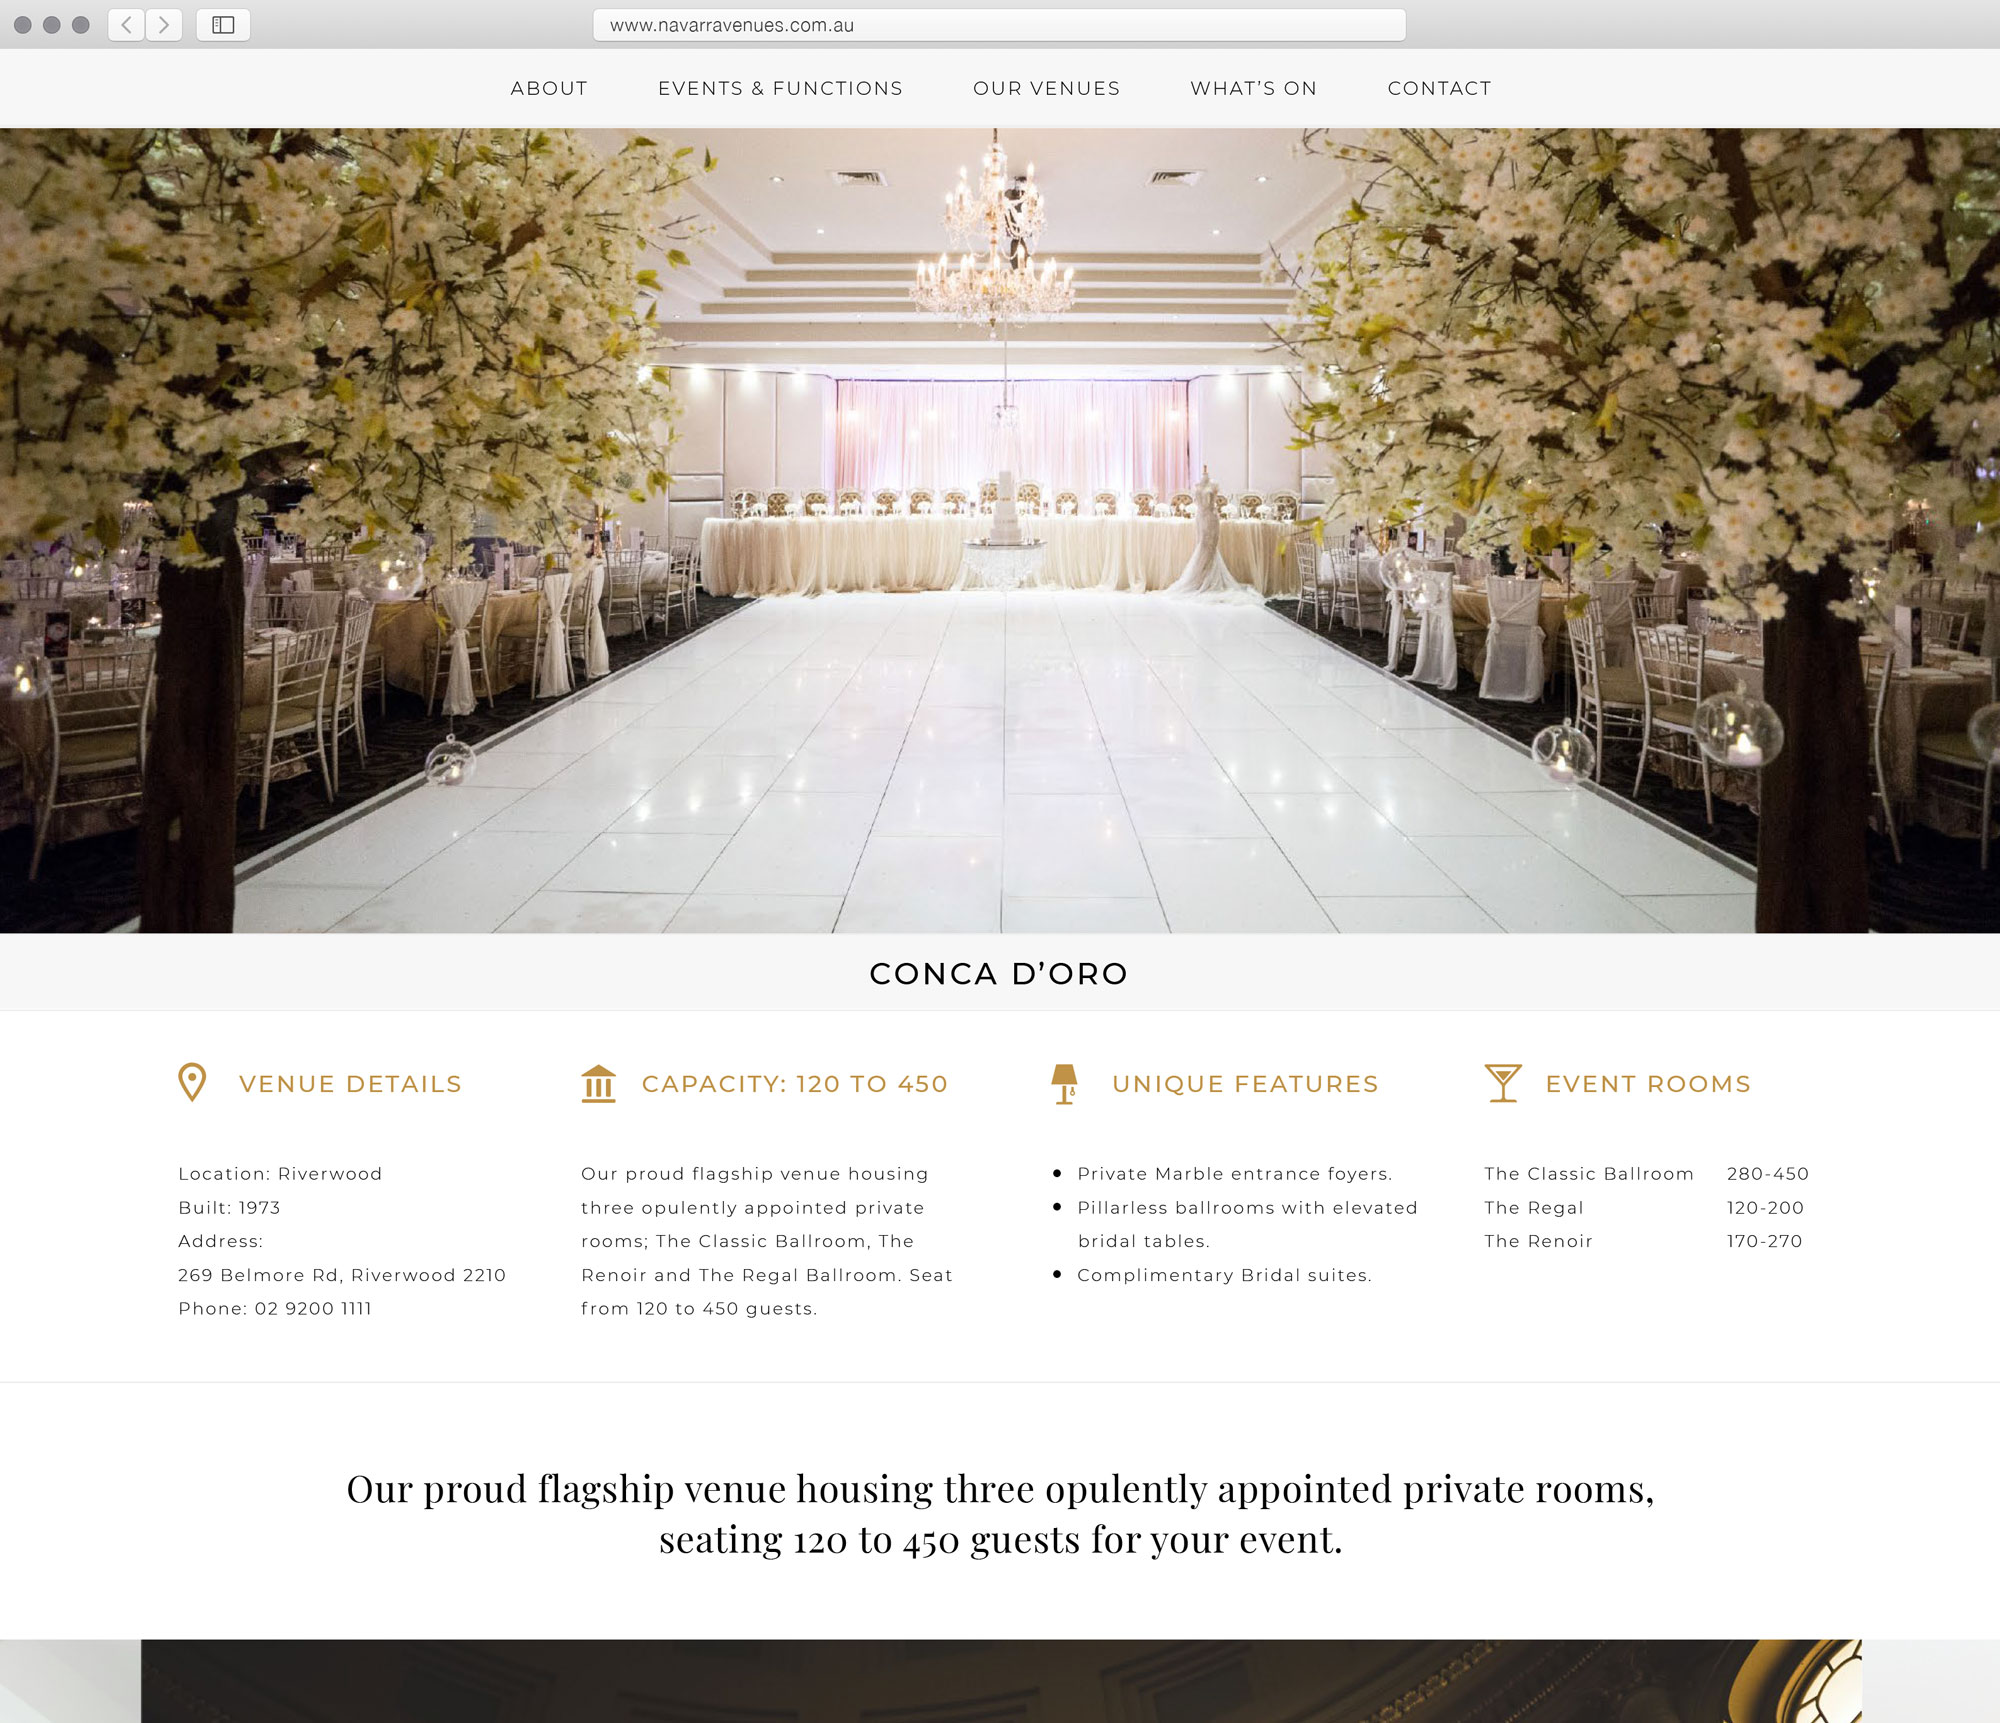 New venue page, highlighting room features